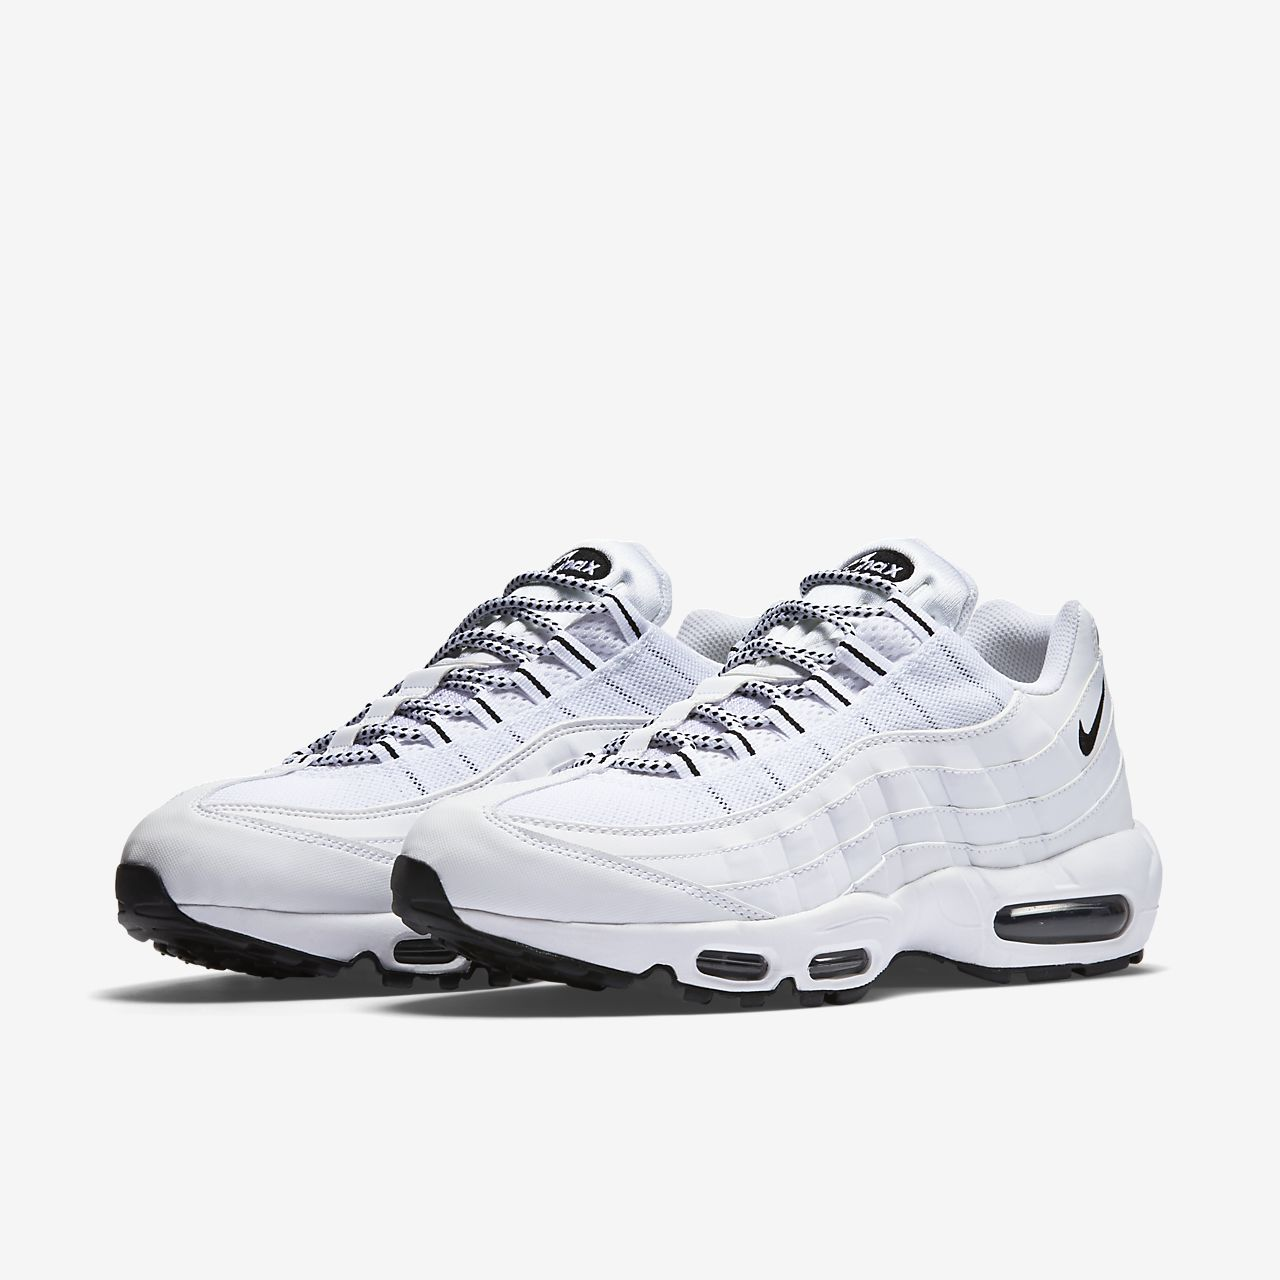 nike air max 95 black cheap nz